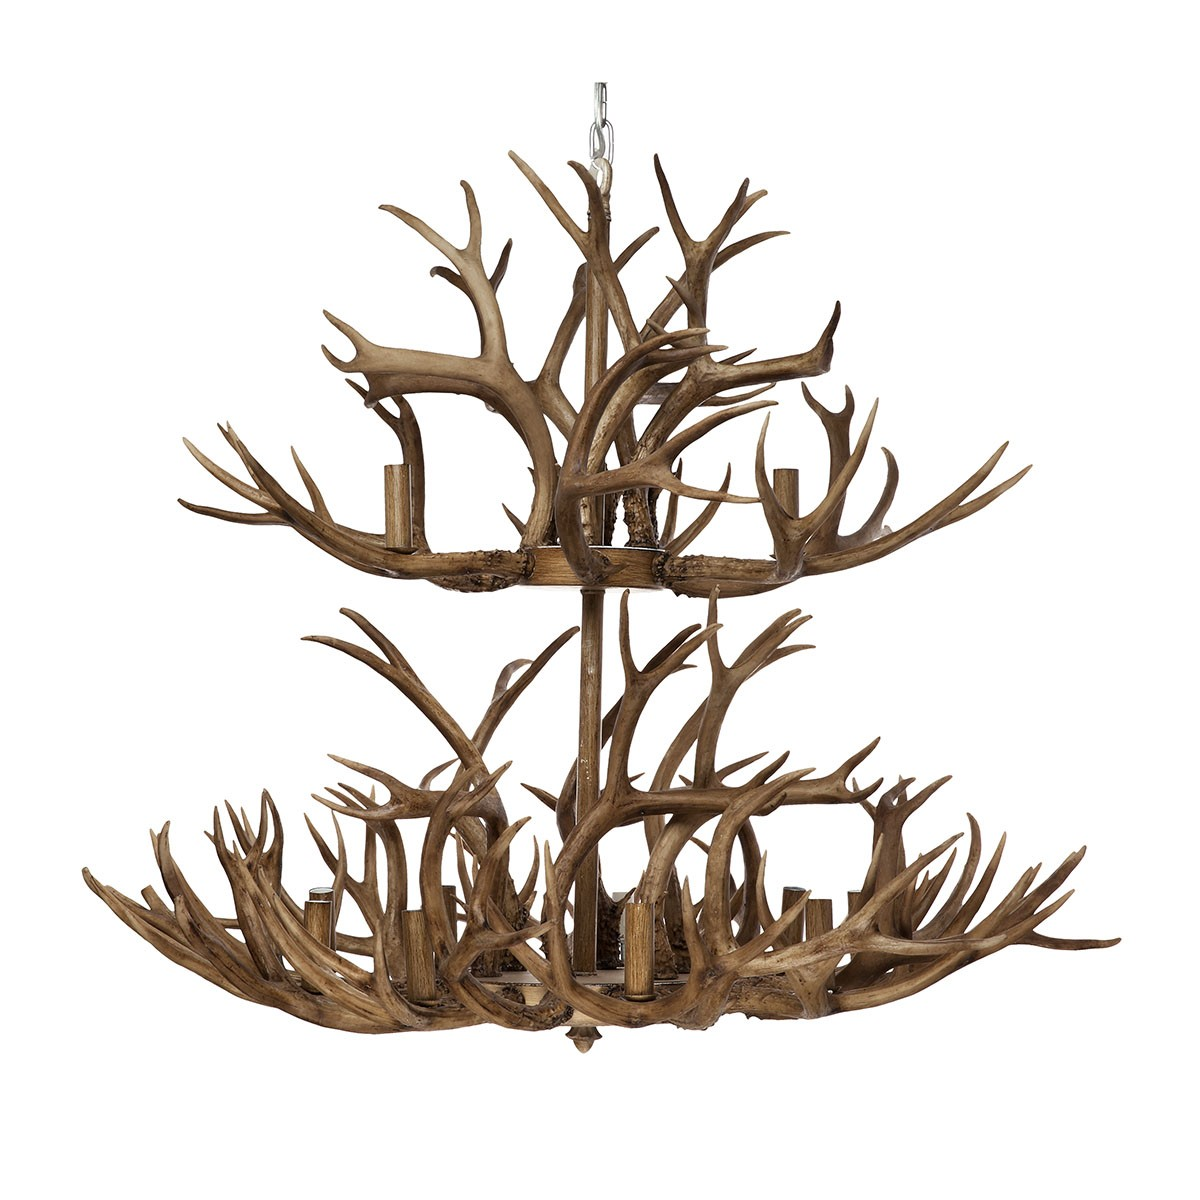 Aspen Antler Chandelier, 12 Arm